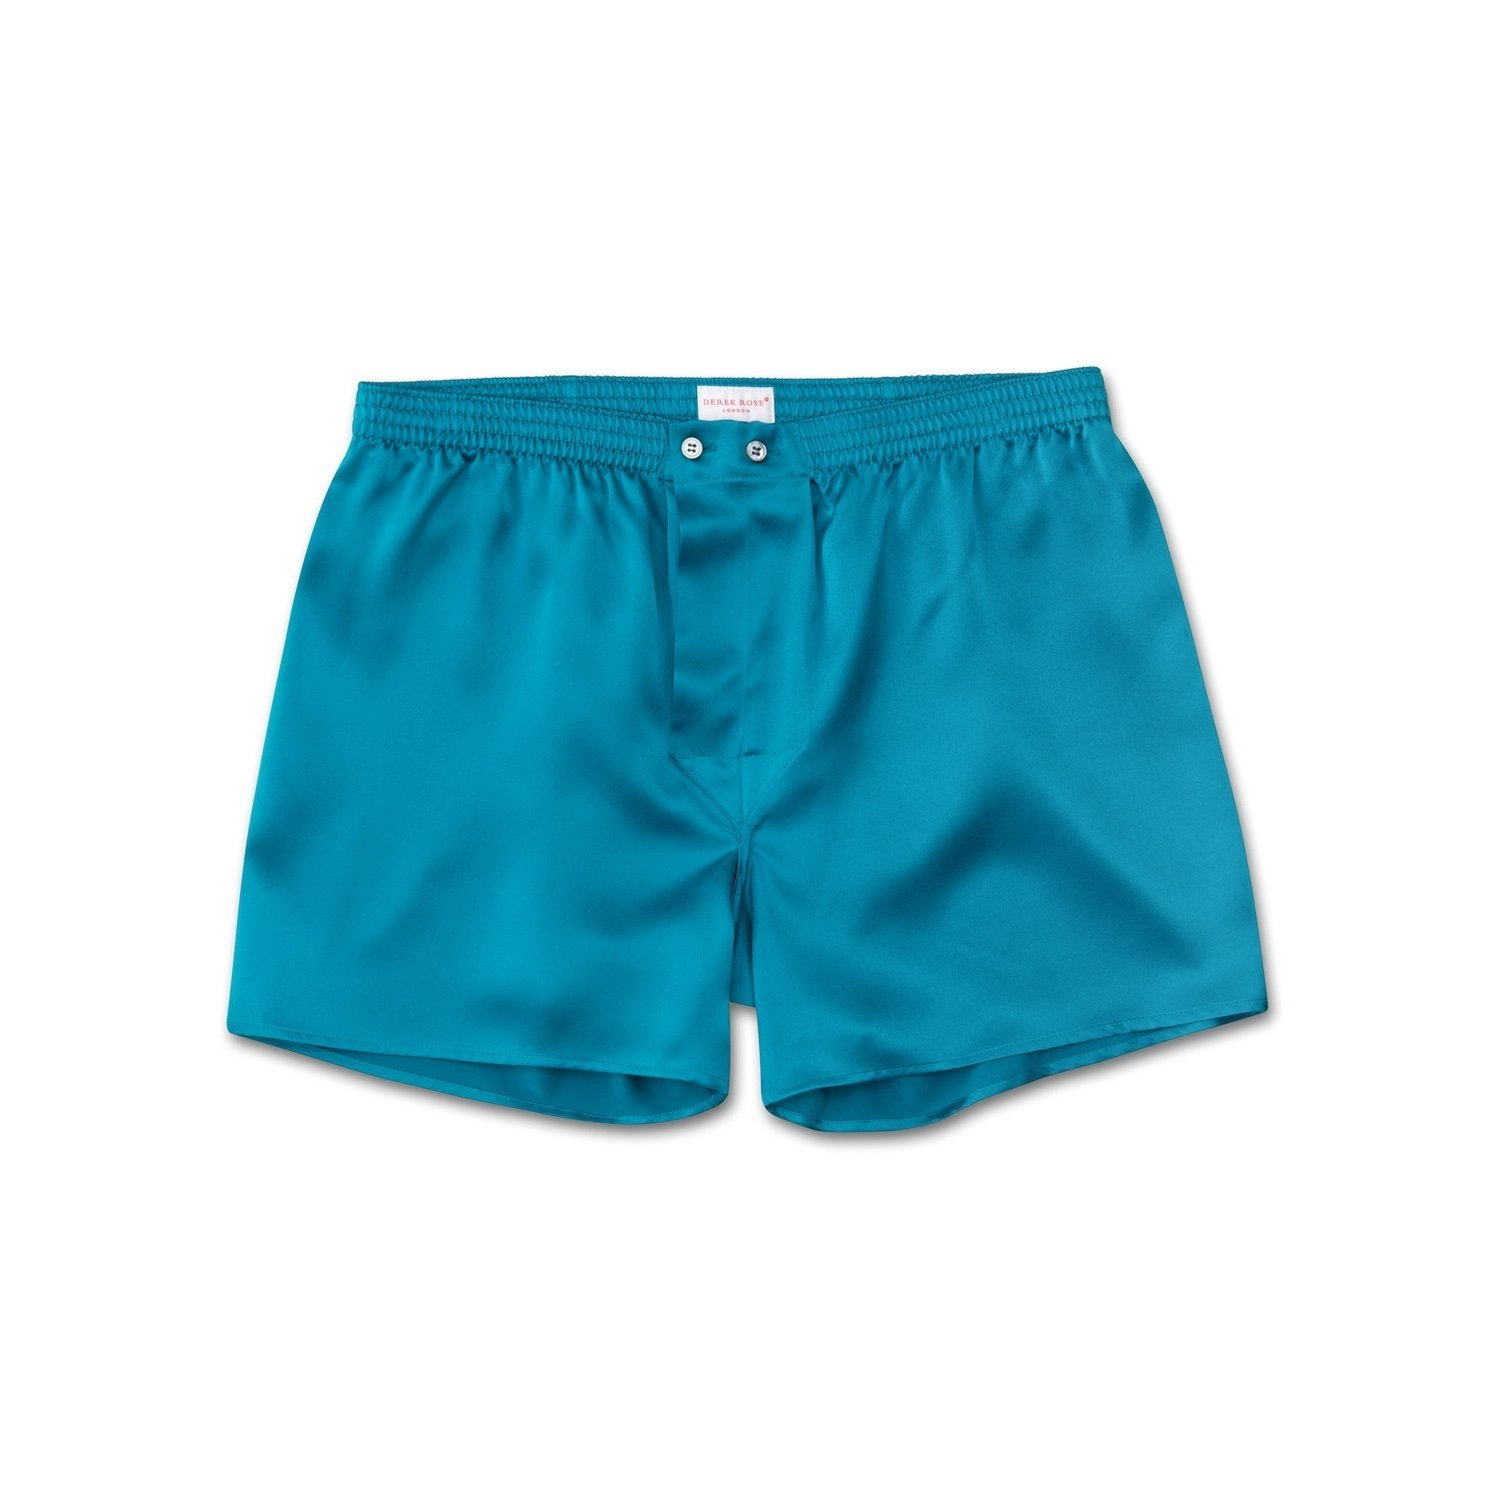 Men's Classic Fit Boxer Shorts Bailey Pure Silk Satin Teal